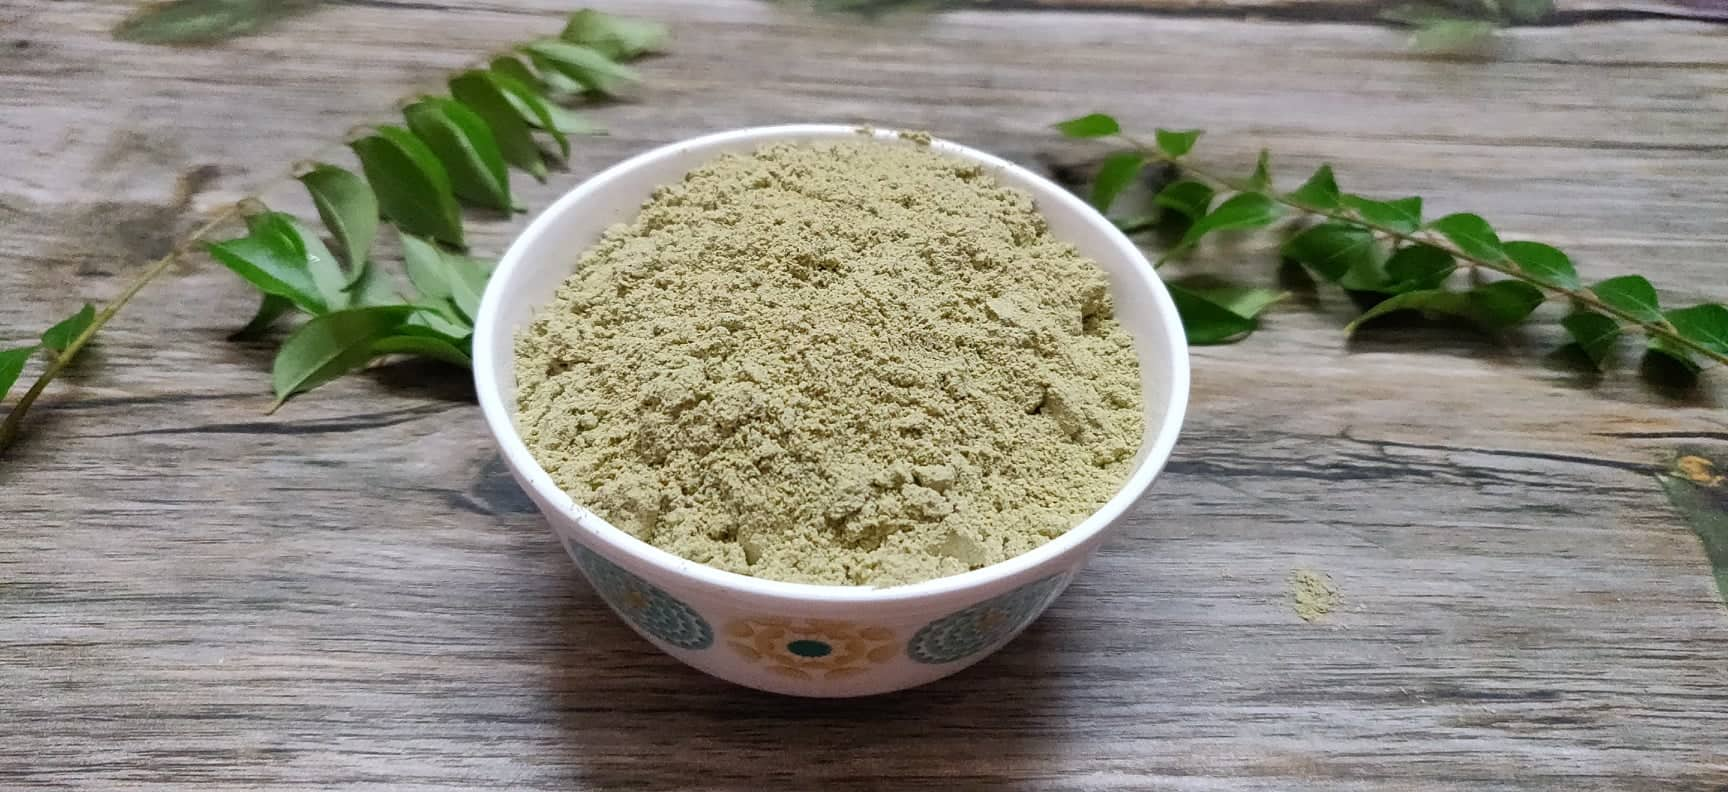 curry_leaves_idli_podi - 71869281_1411632992323215_4483894171387559936_n